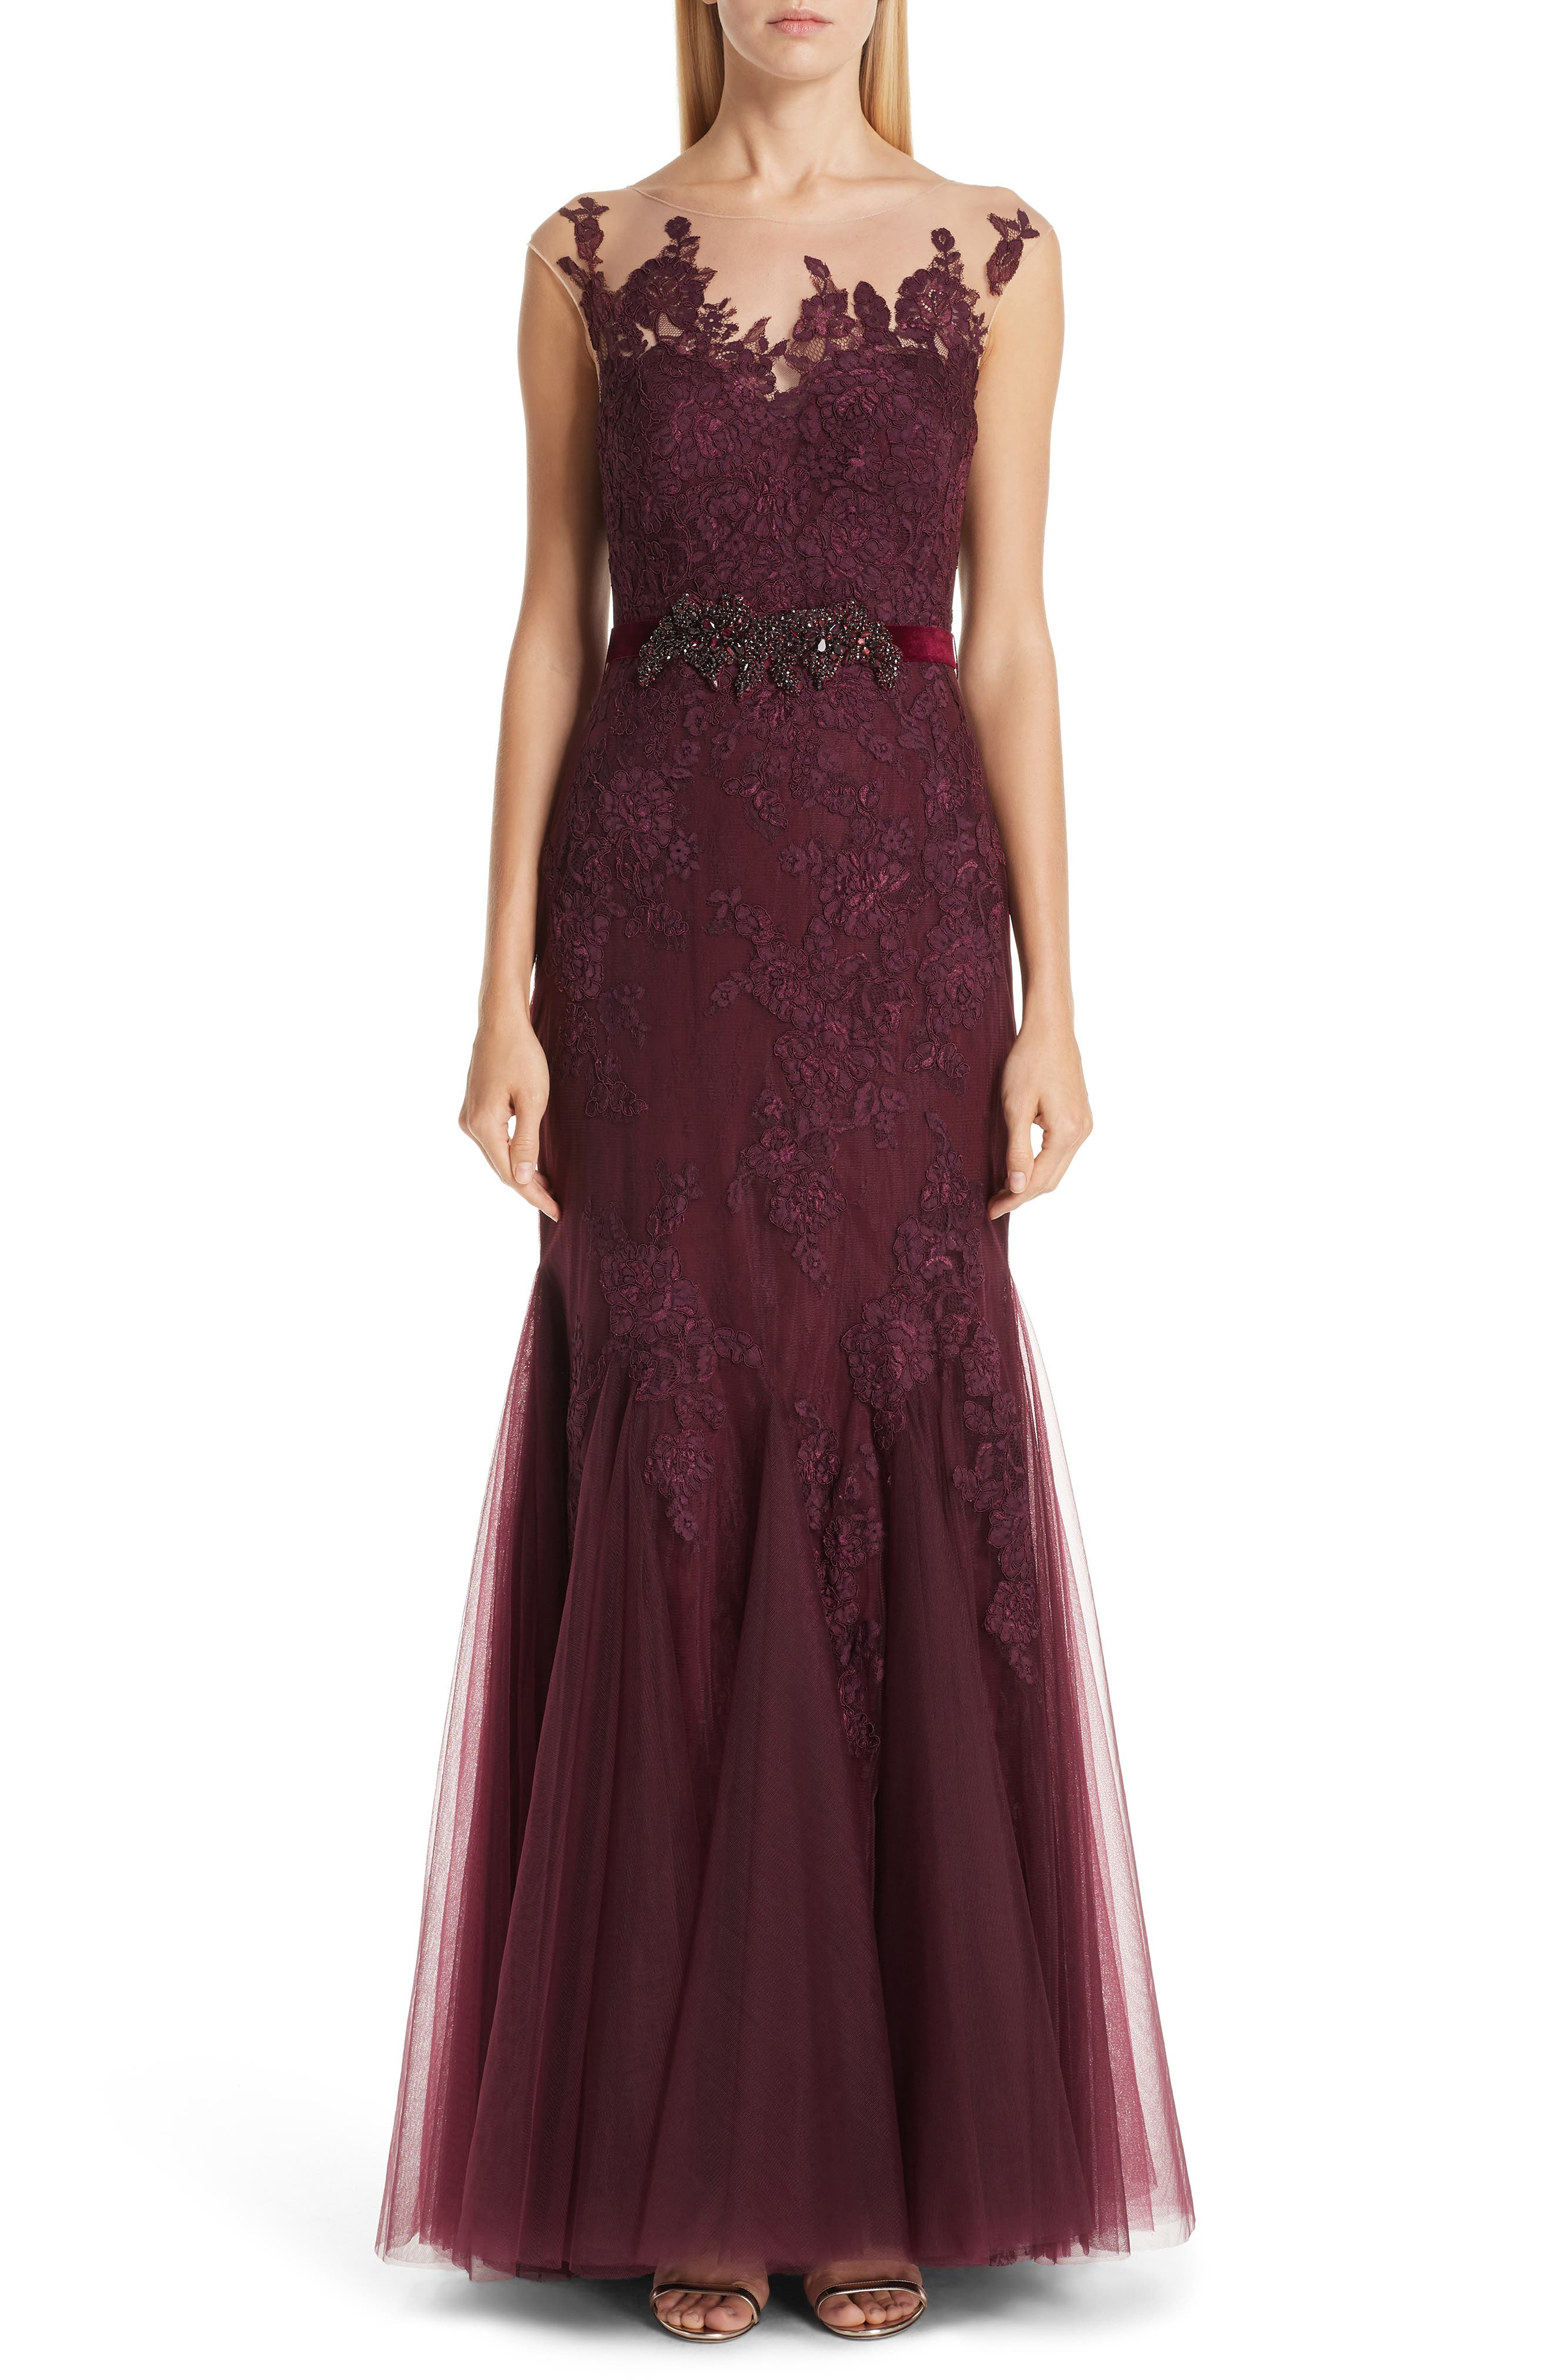 BADGLEY & MISCHKA Collection Belted Illusion Neck Lace Trumpet Gown in Burgundy